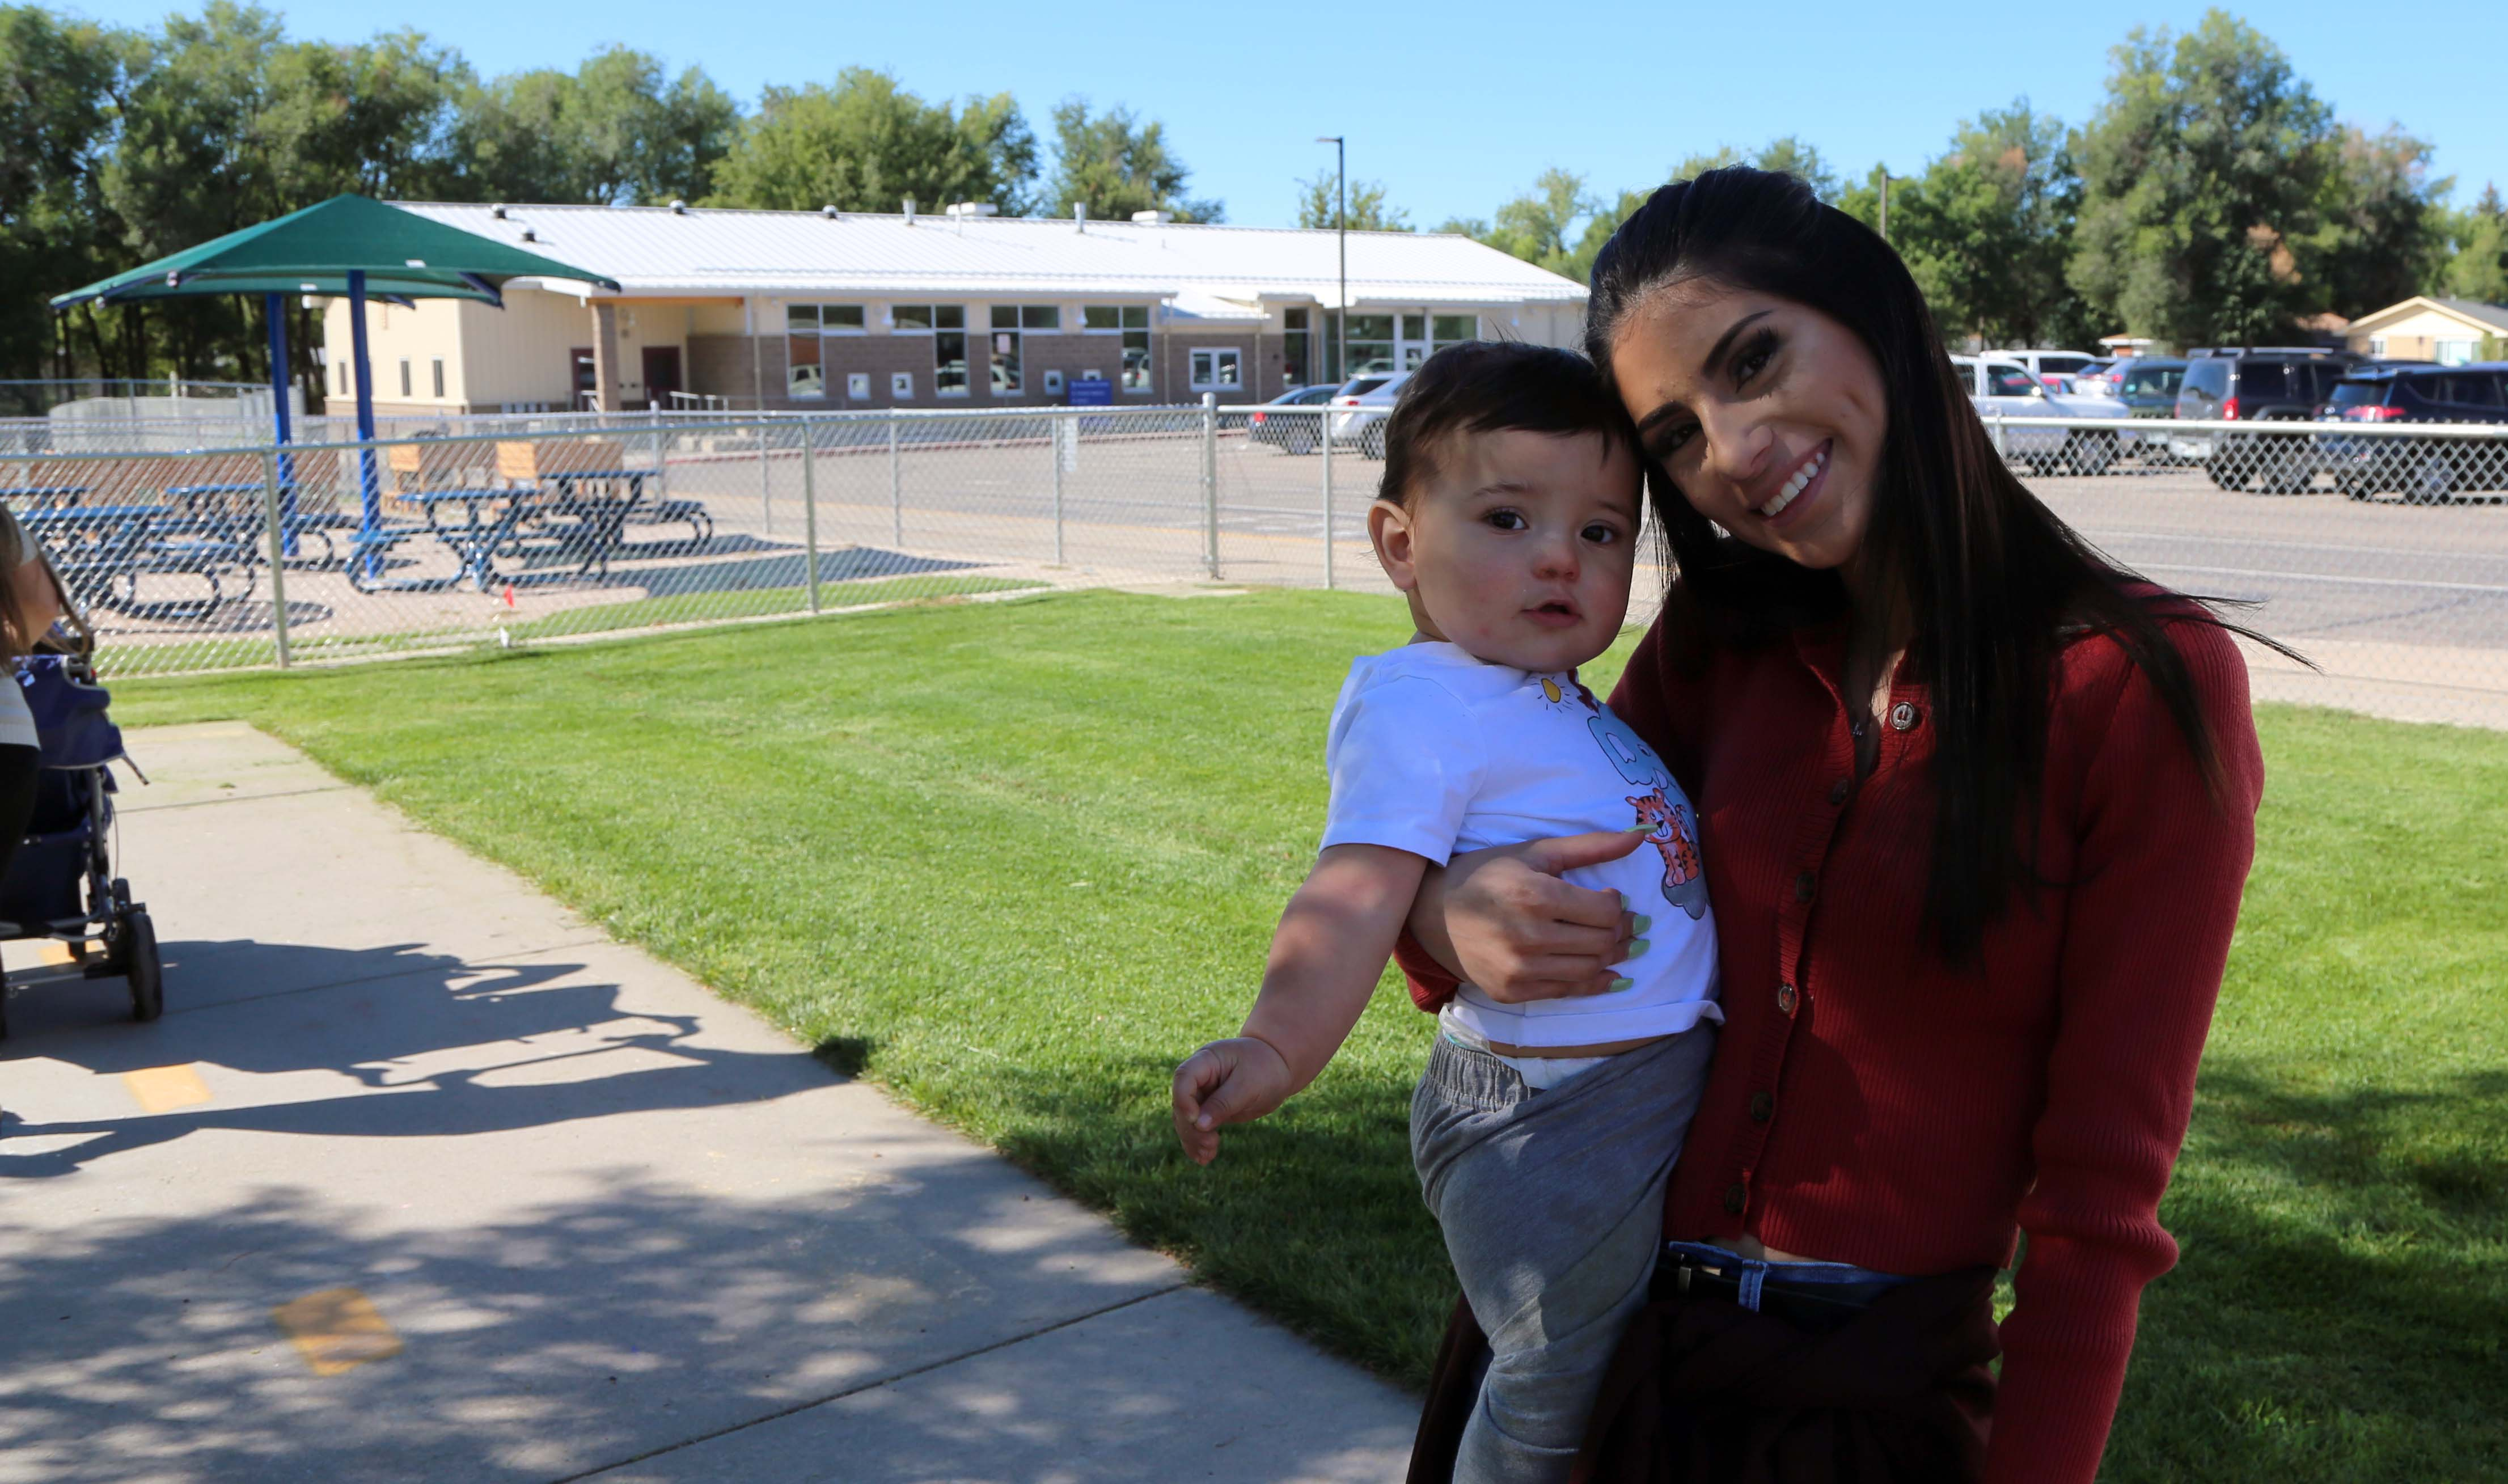 A student holds her son, who stays in a childcare center while she attends school.